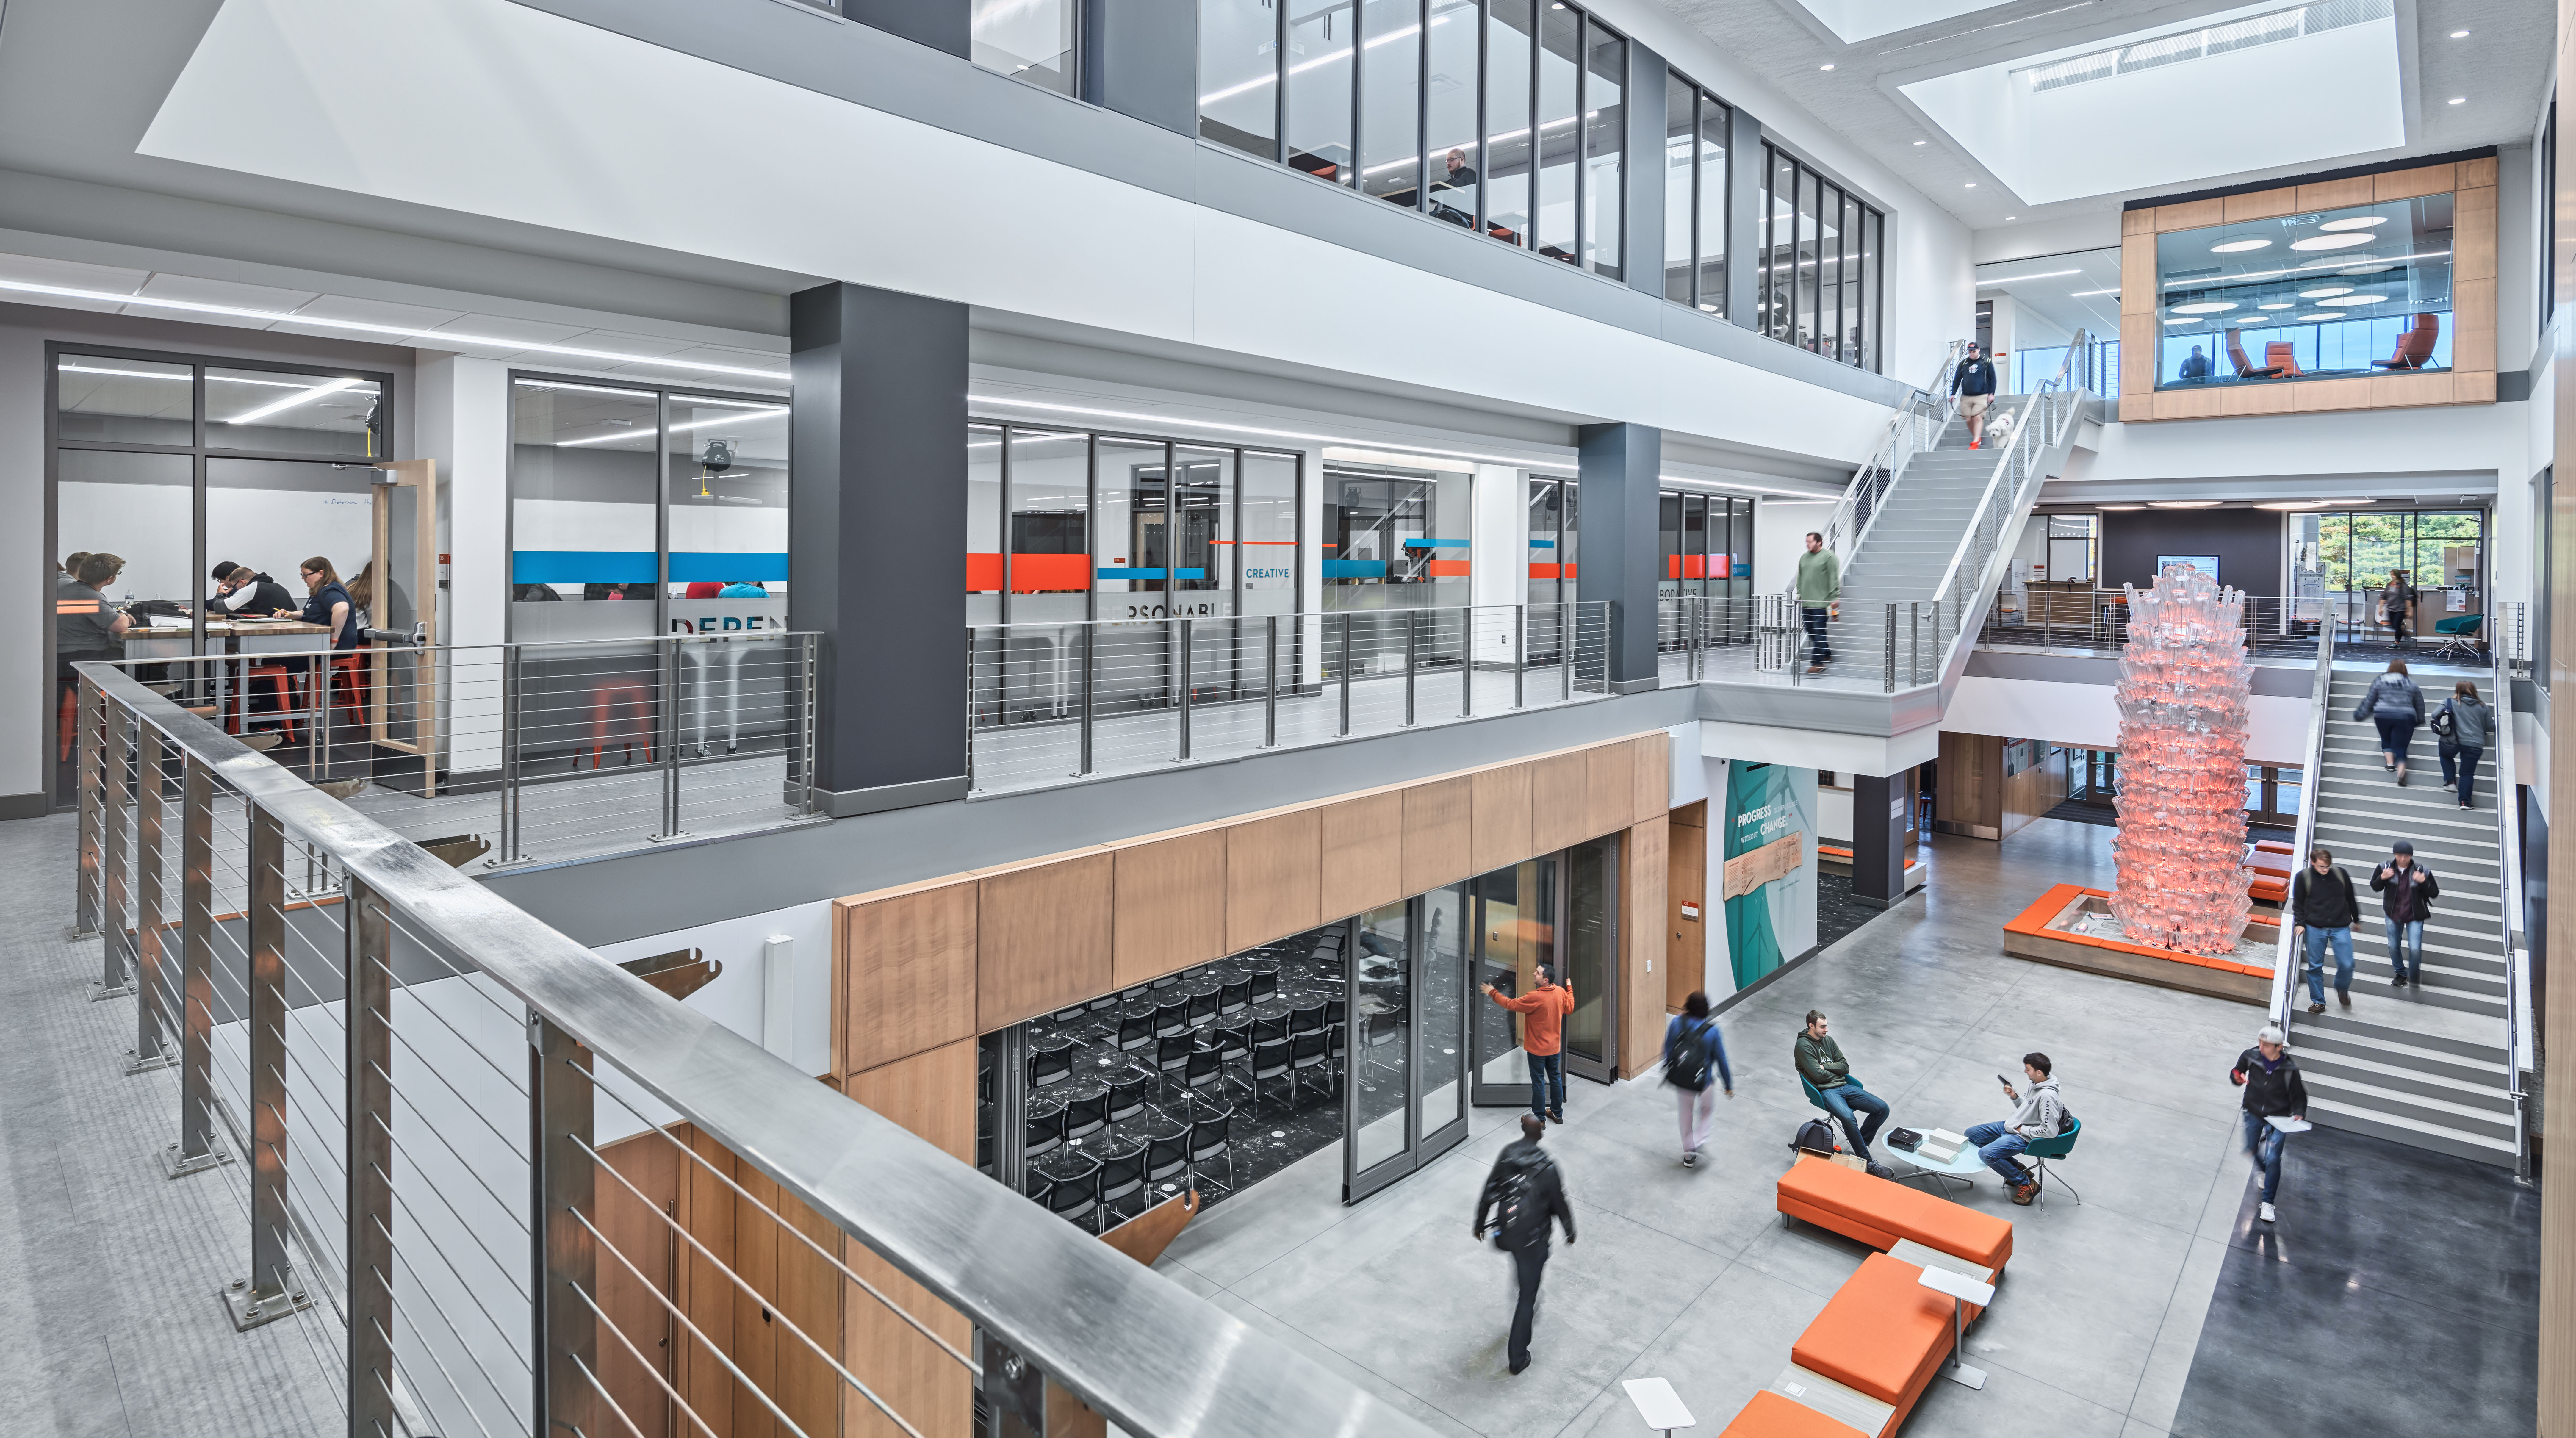 A look at the entire atrium